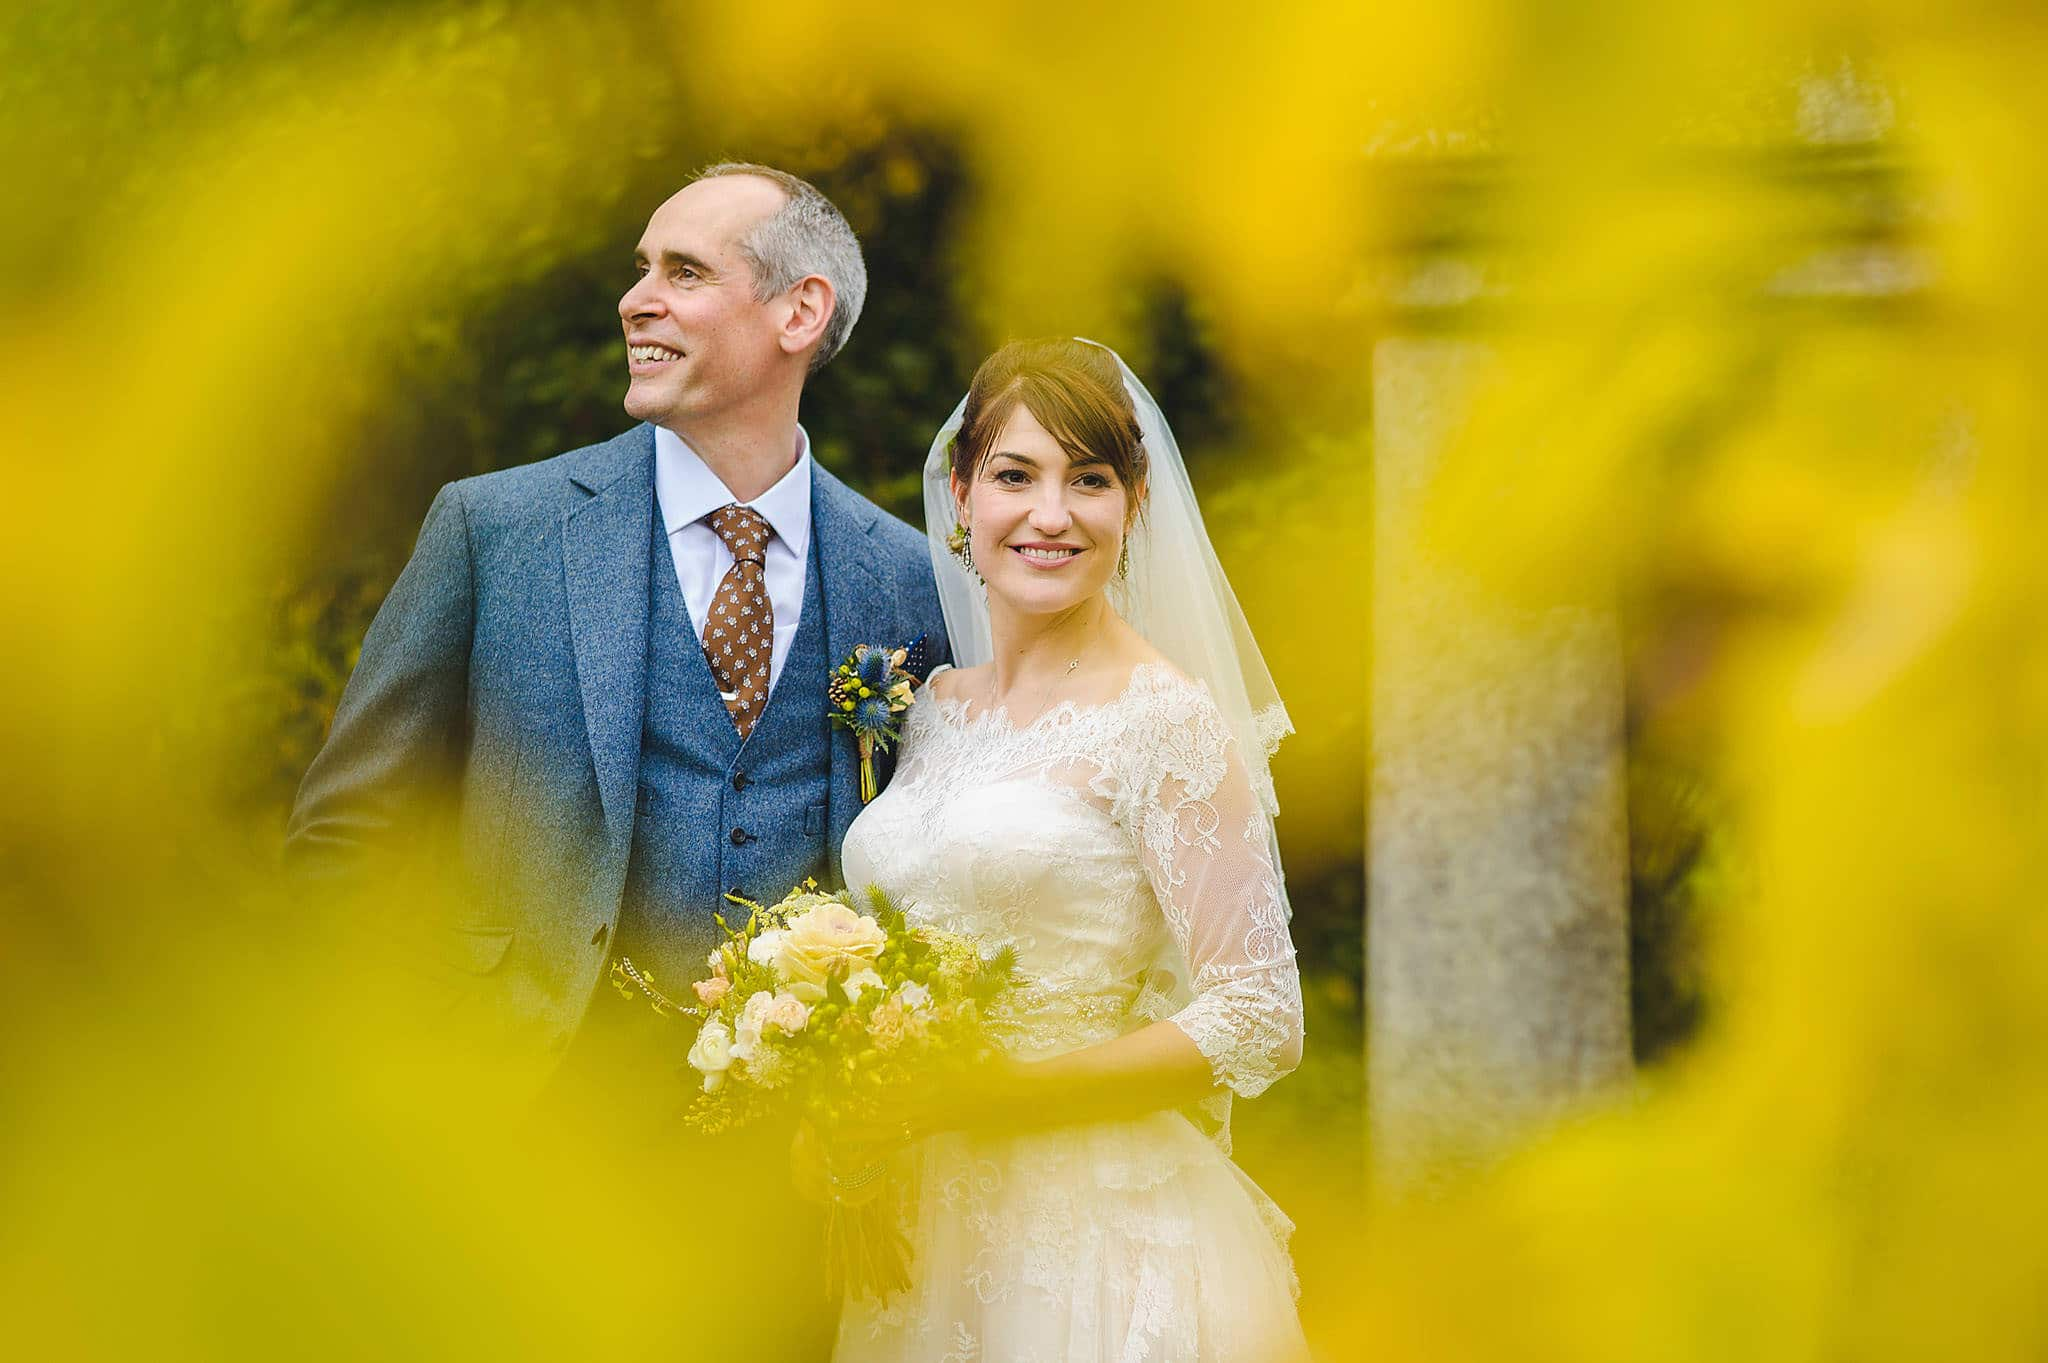 Midlands wedding photography - 2015 Review 26